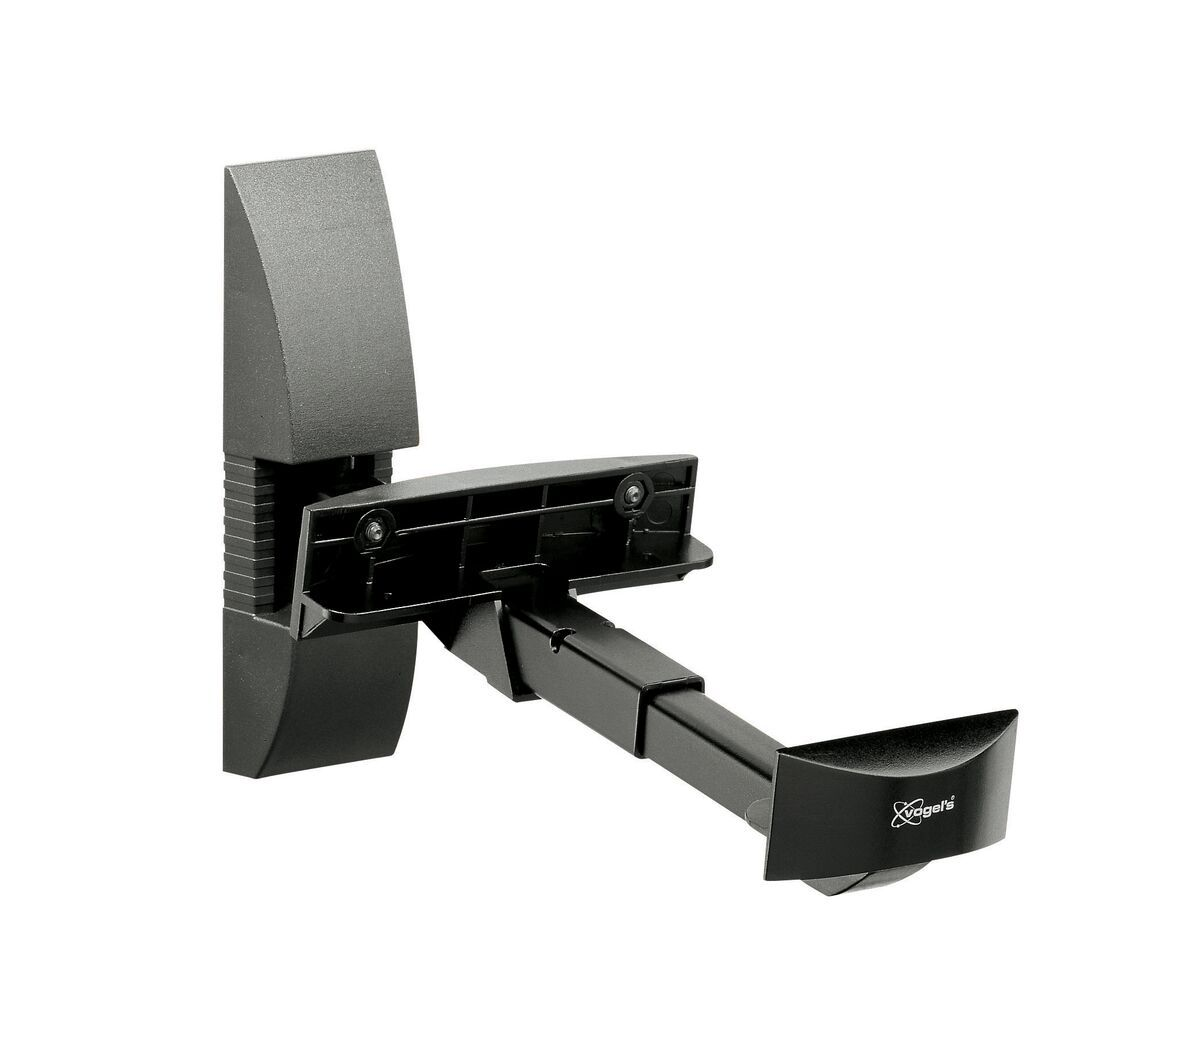 Vogel's VLB 200 Speaker Wall Mounts (2x) - For loudspeakers up to 20 kg - Product